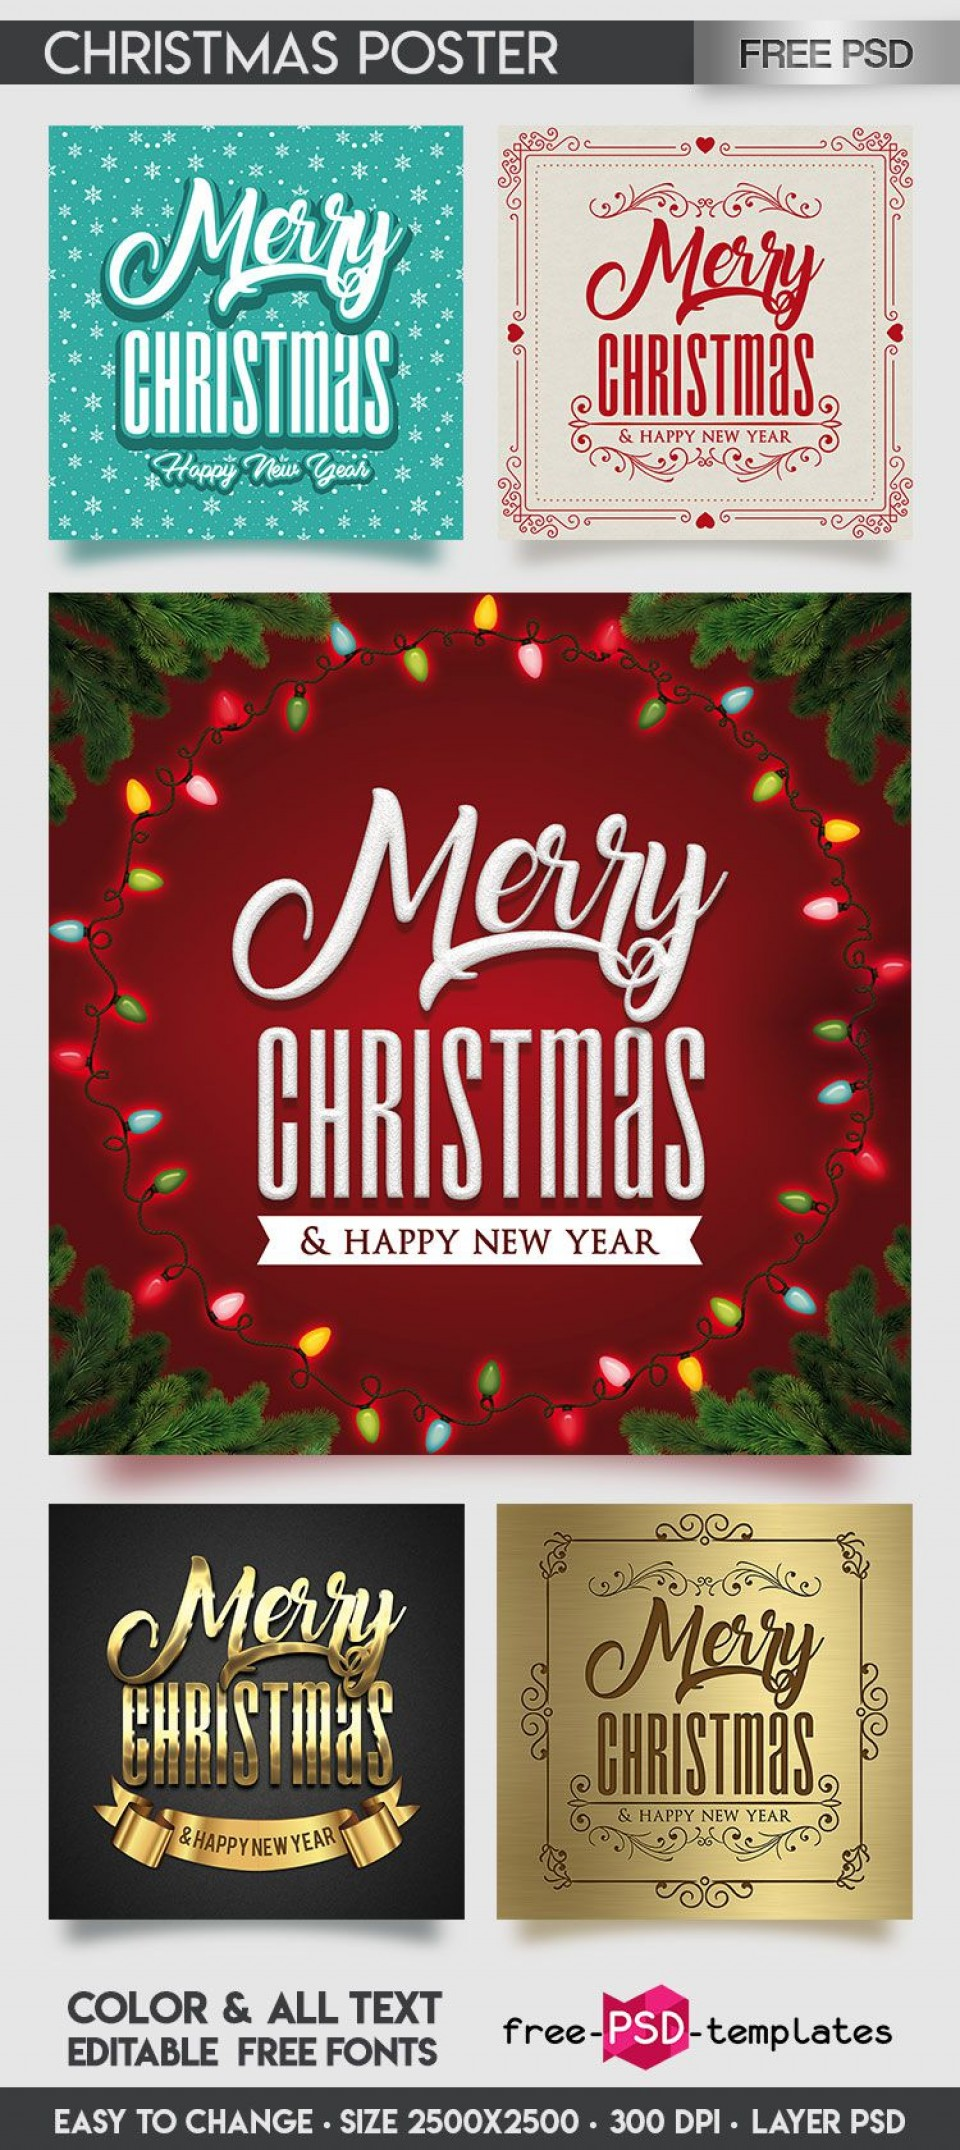 009 Fascinating Free Christma Poster Template Inspiration  Uk Party Download Fair960